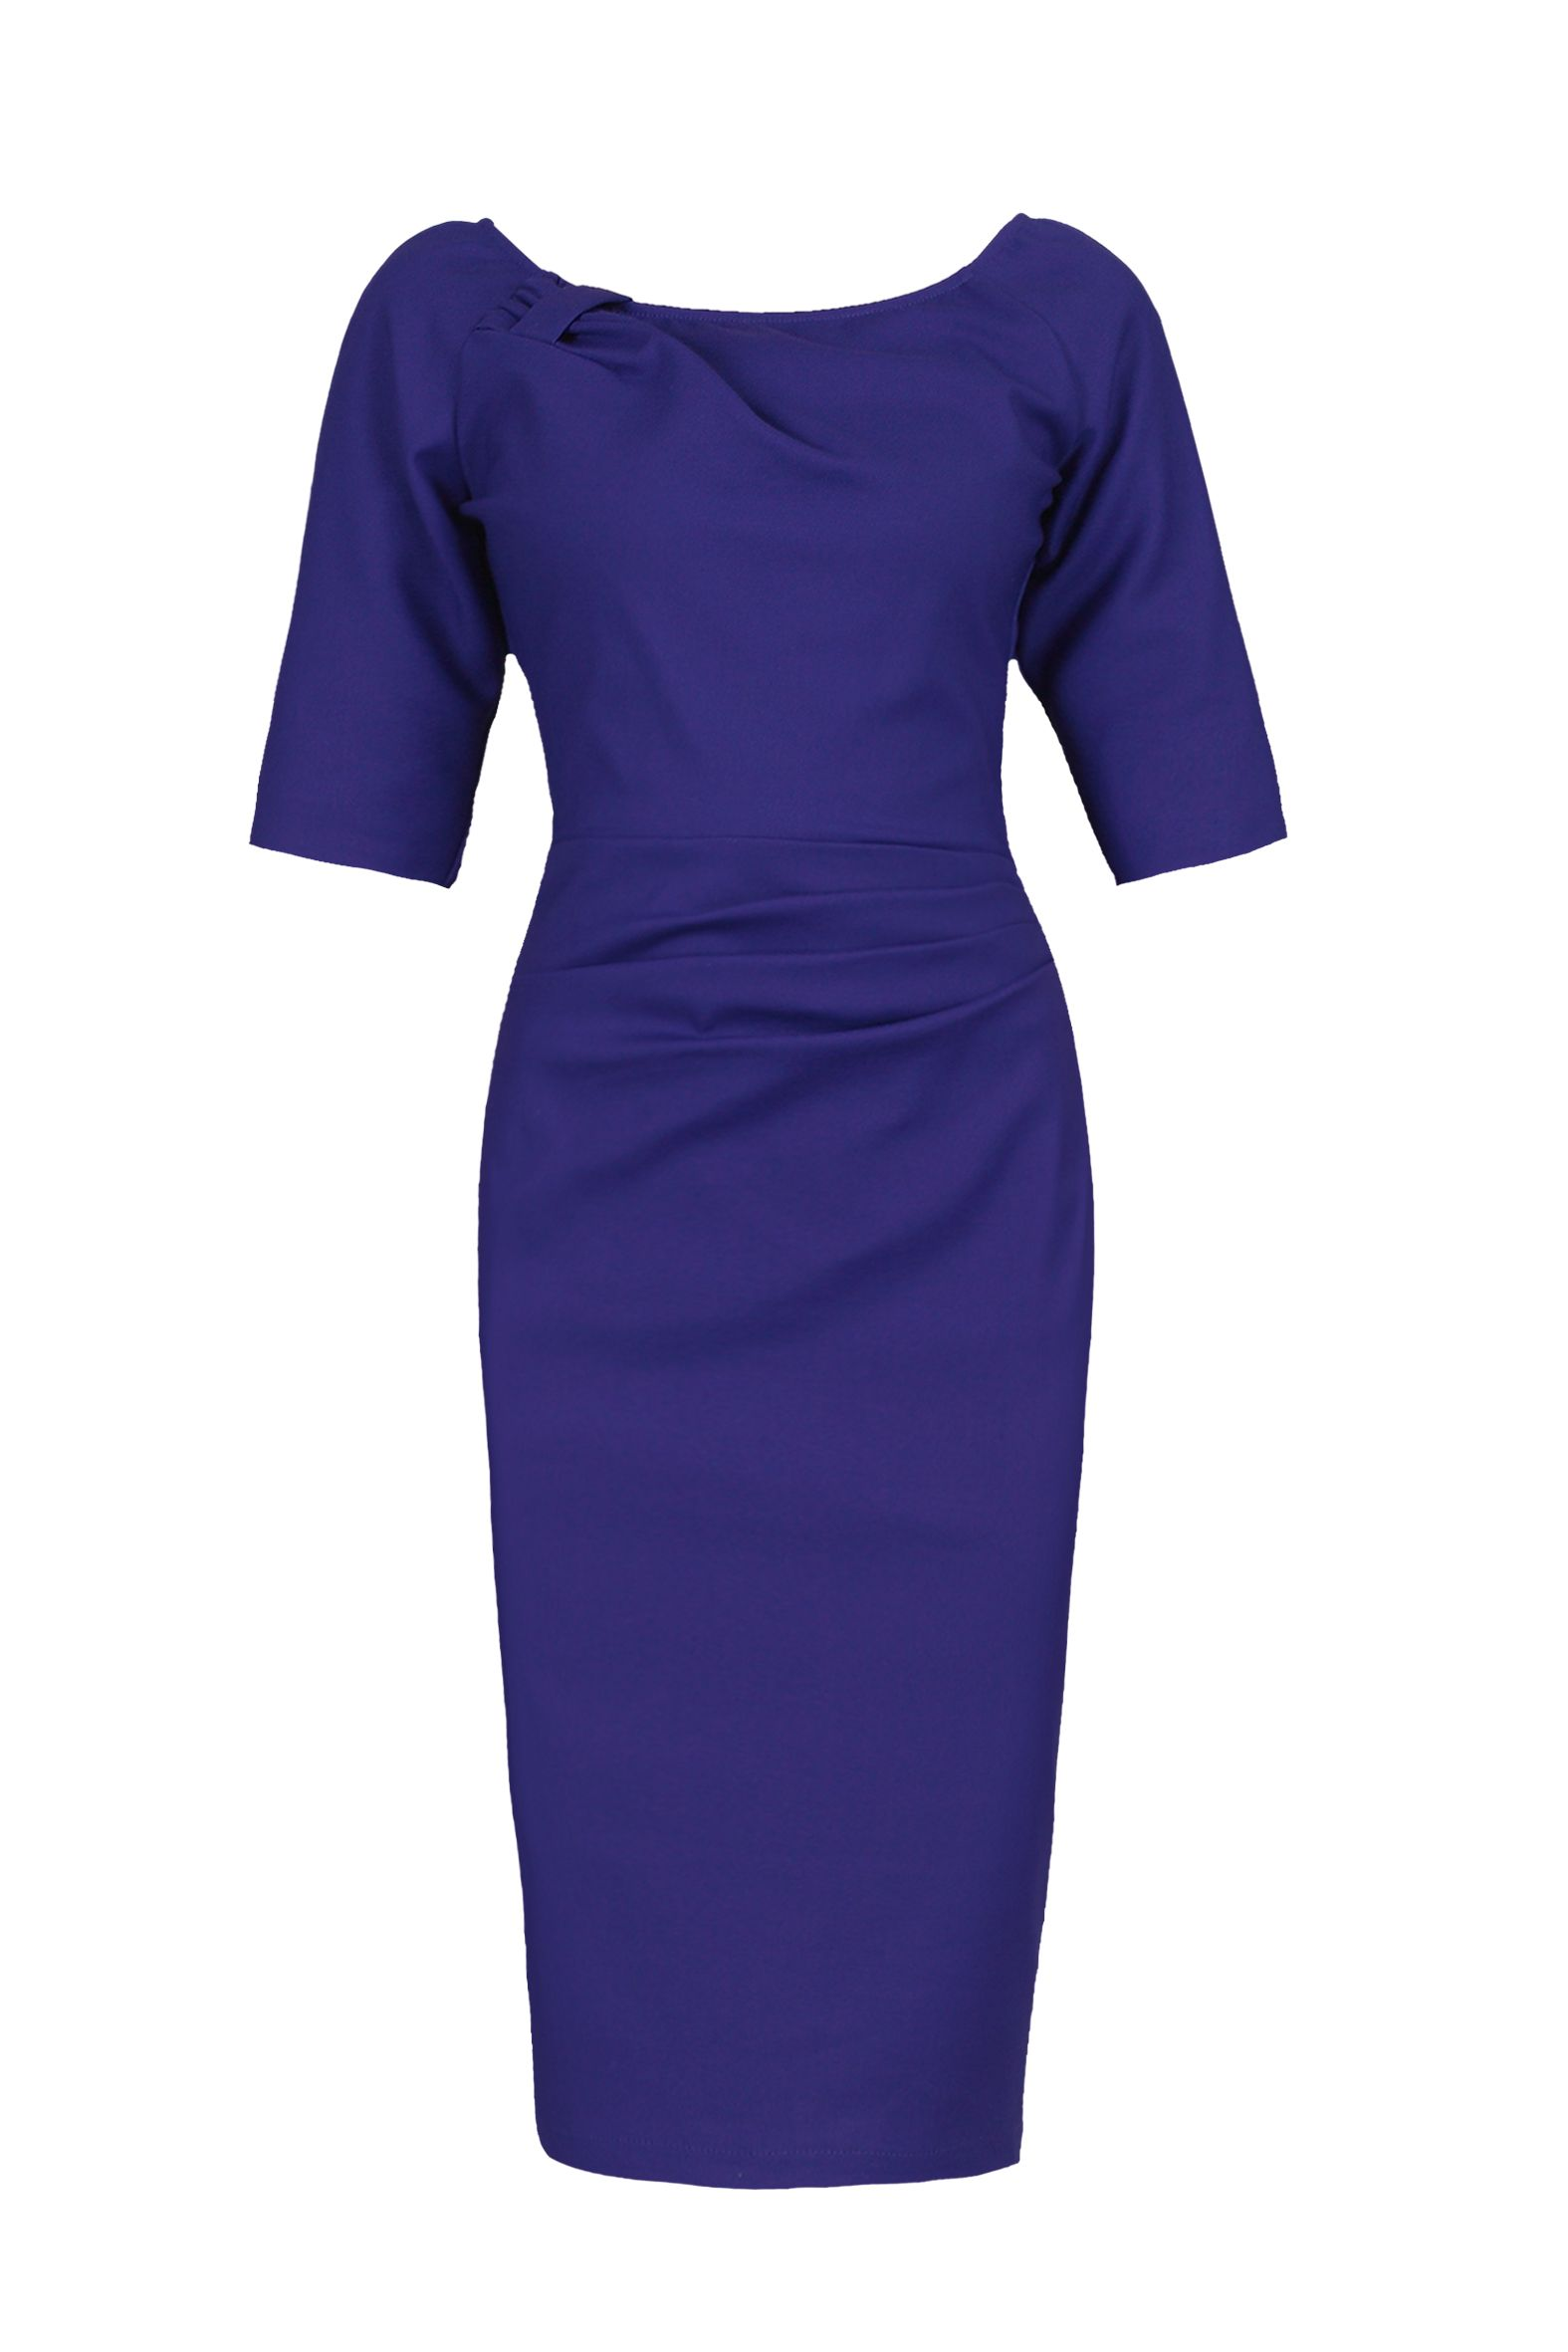 Jolie Moi 12 Sleeve Ruched Wiggle Dress, Royal Blue